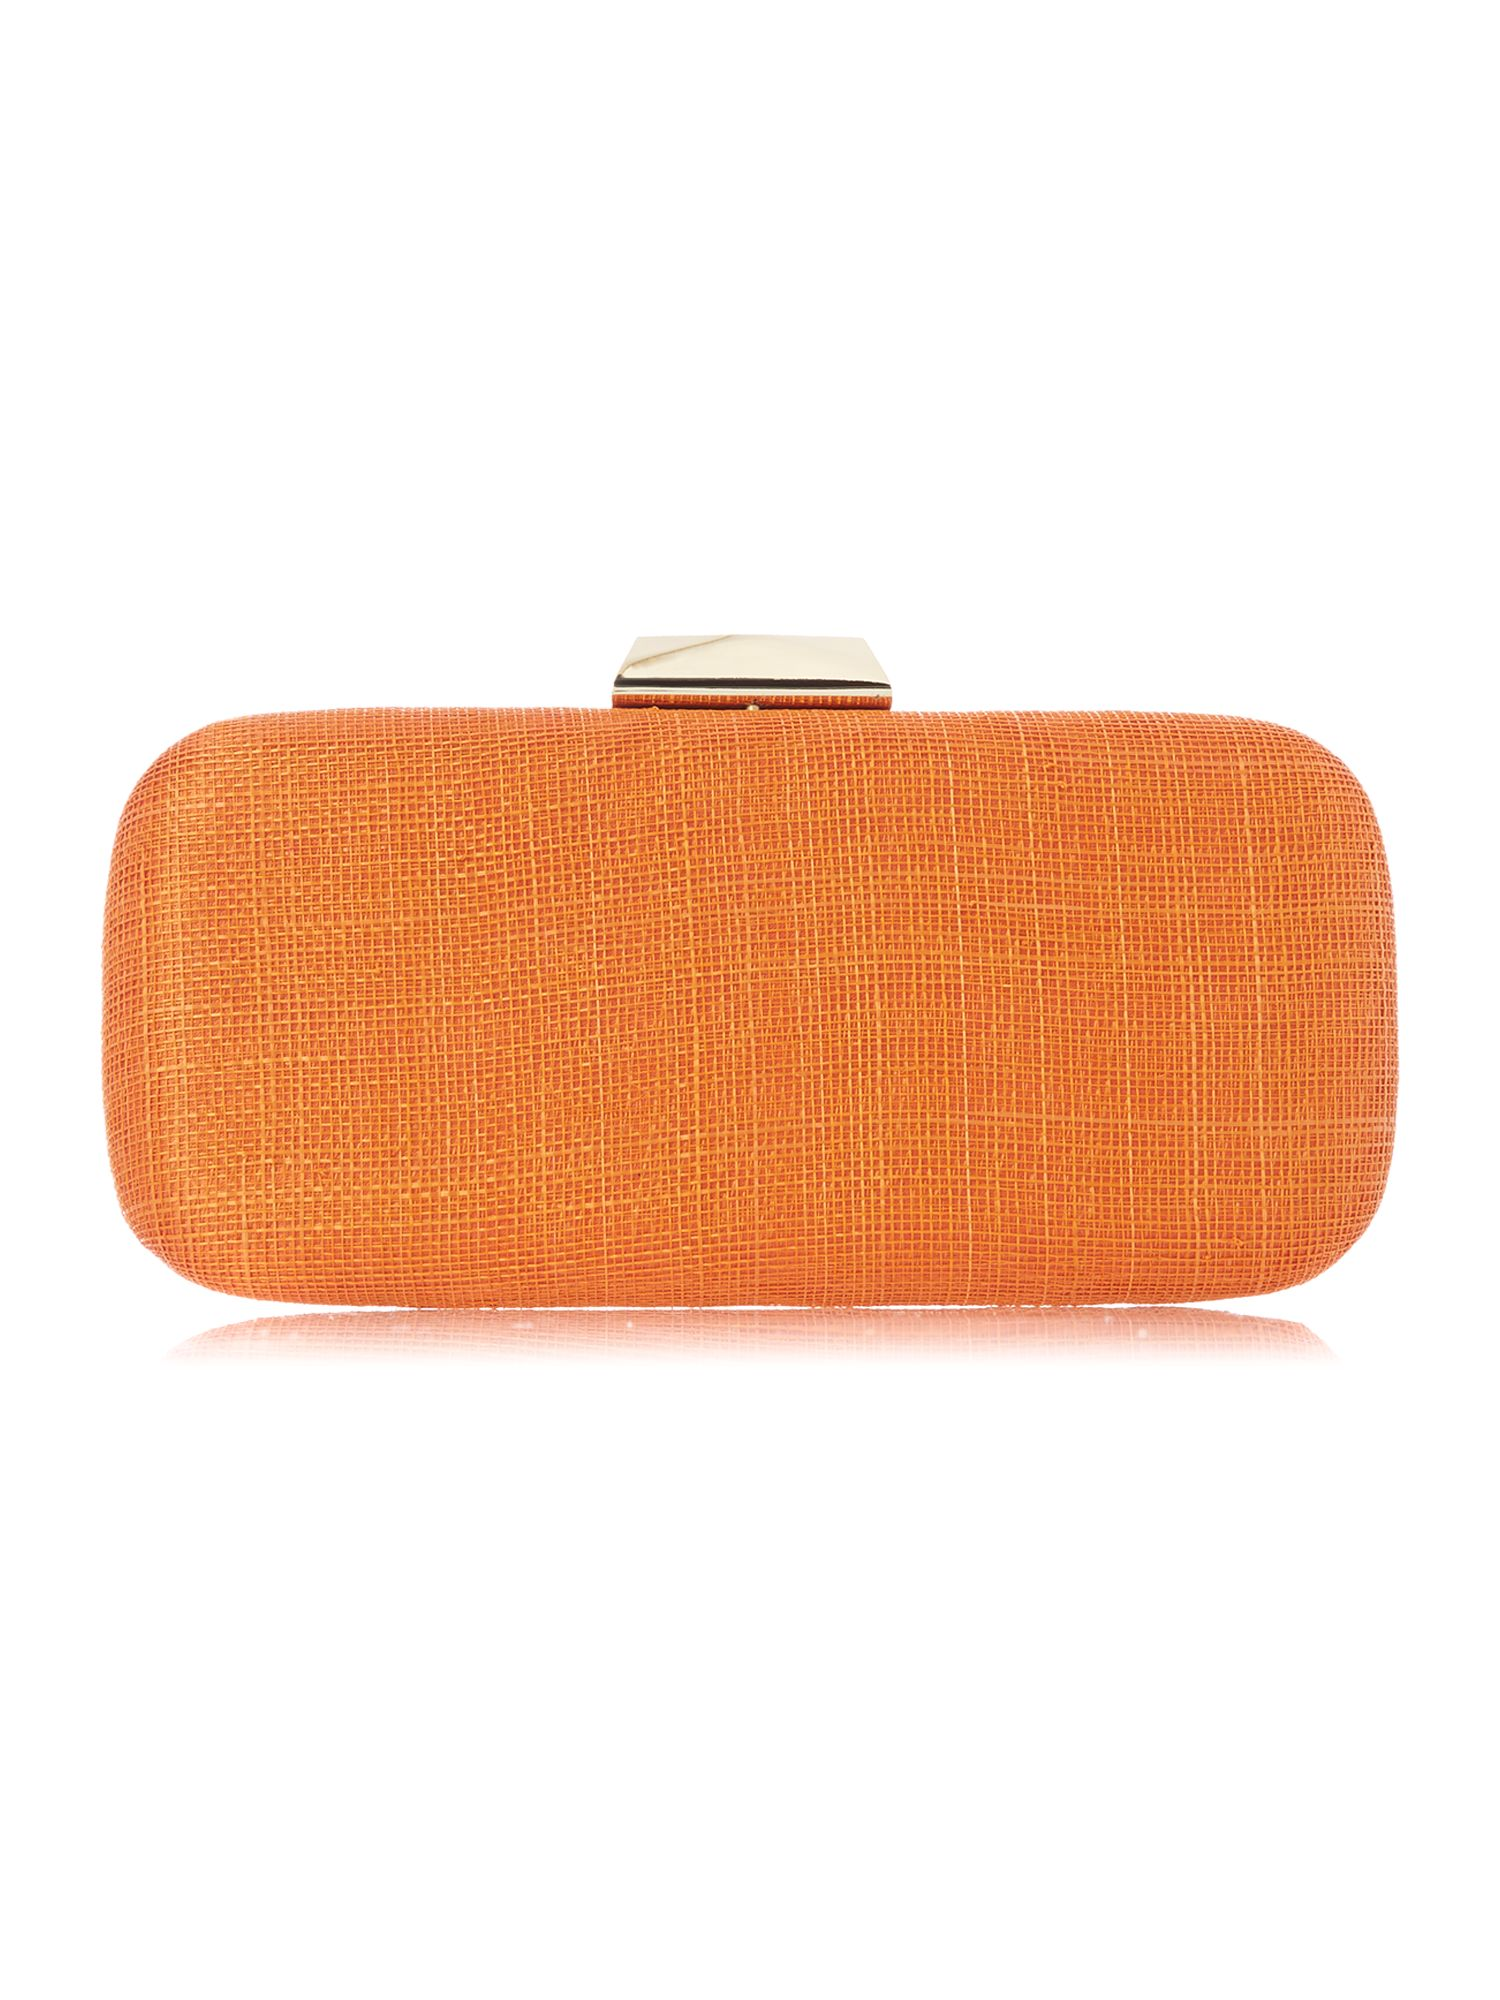 Multi-coloured clutch bag